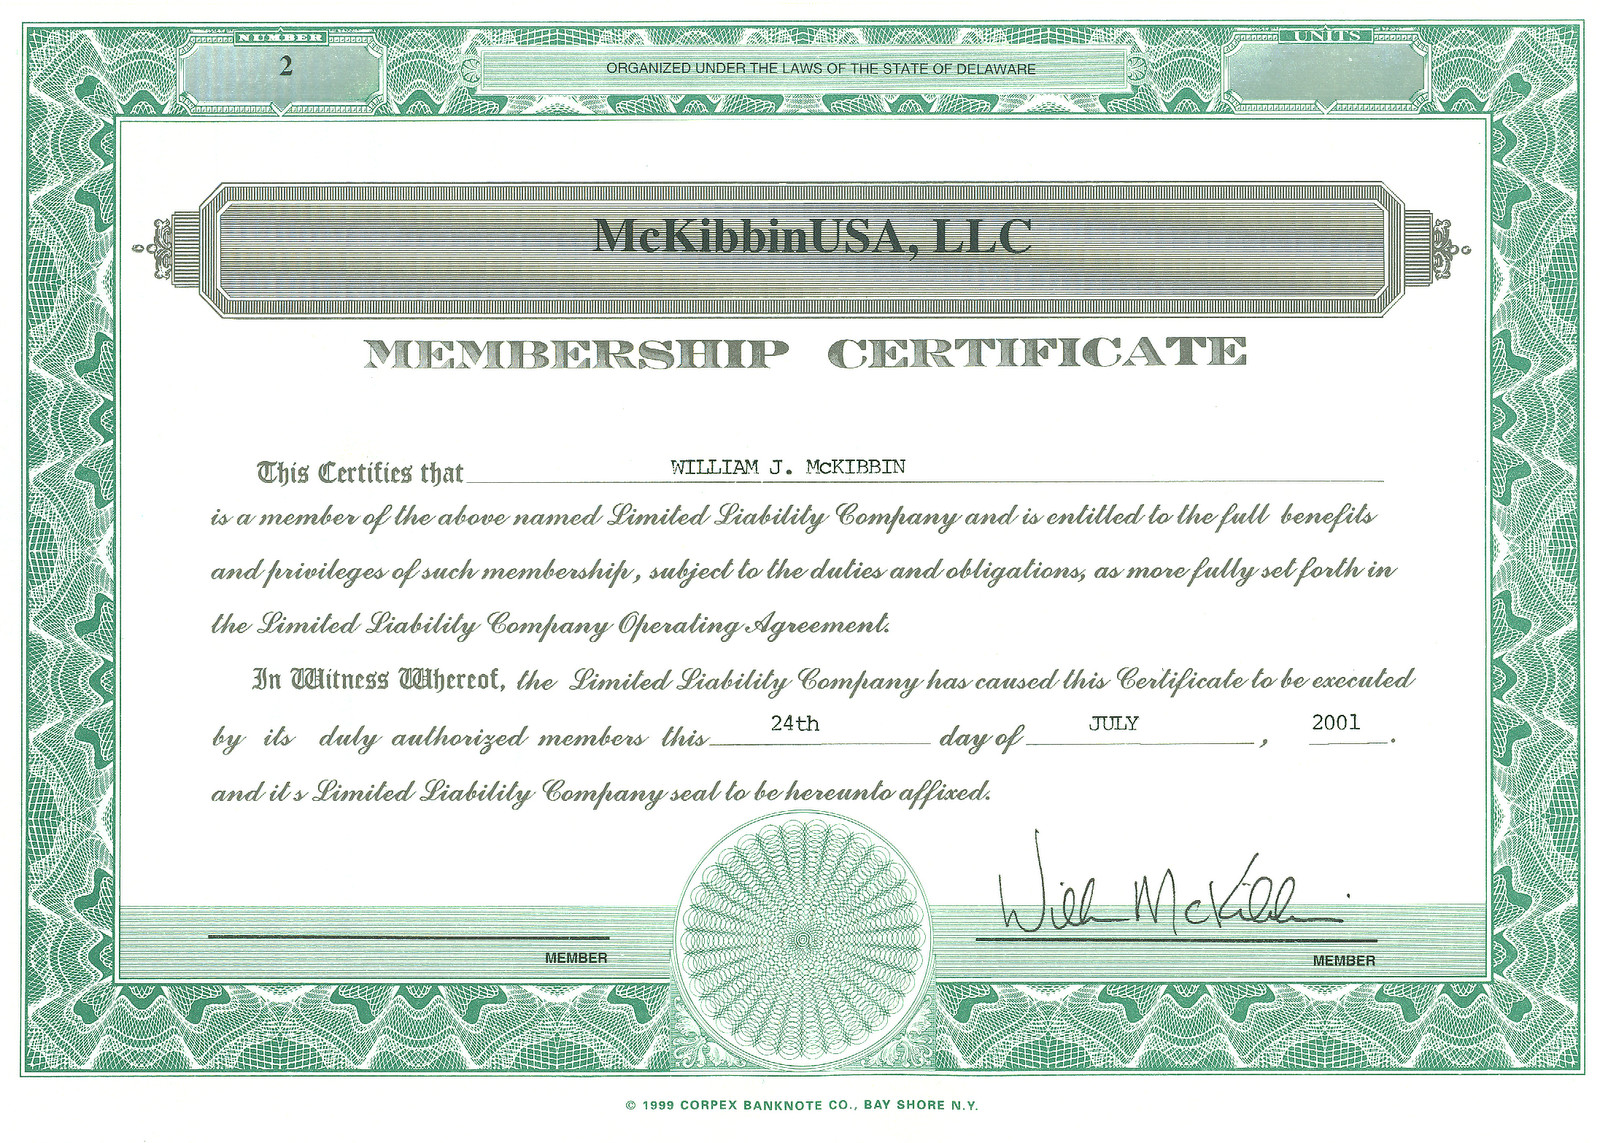 Llc Member Certificate Template to Learn More About How I Started My Business Back In 2001